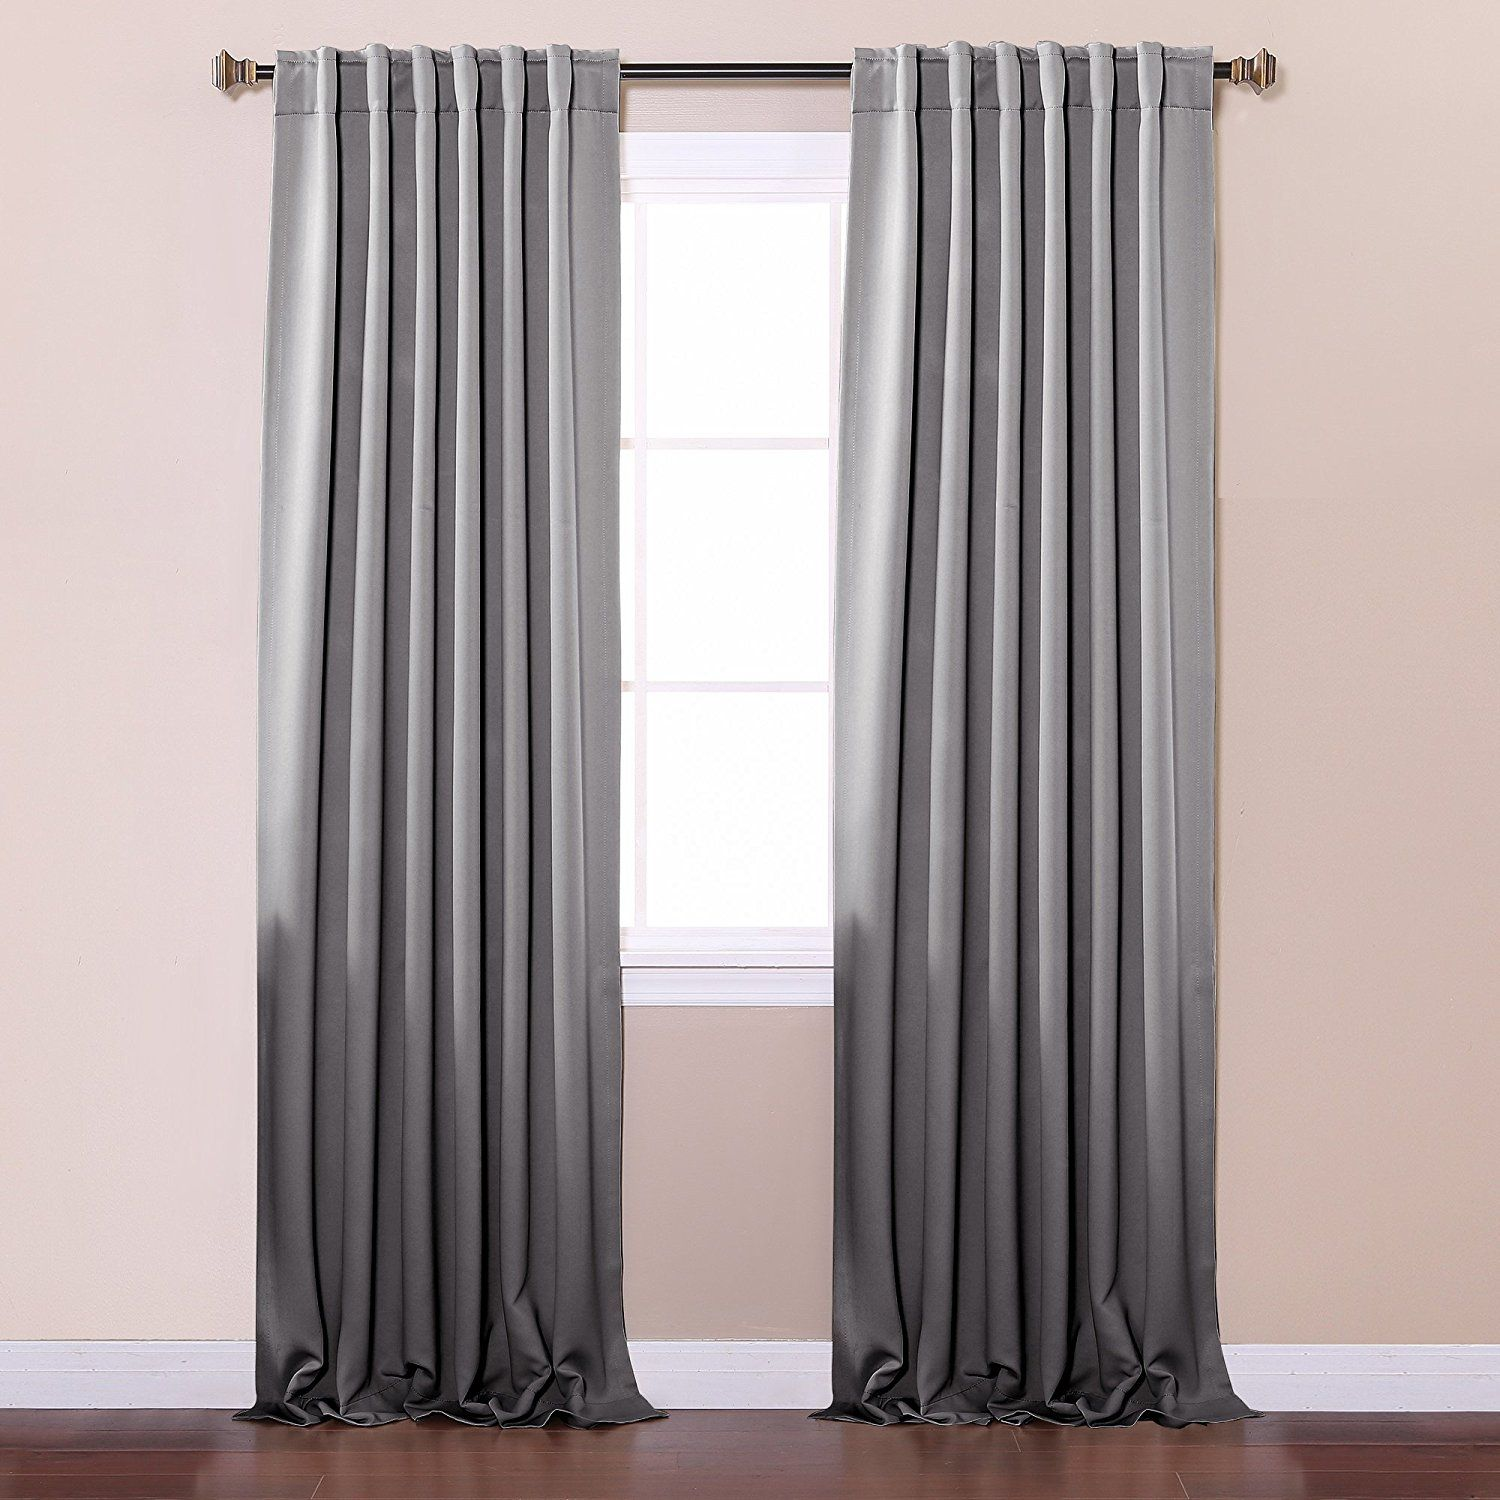 Best Curtain Rods For Blackout Curtains | Curtain ...